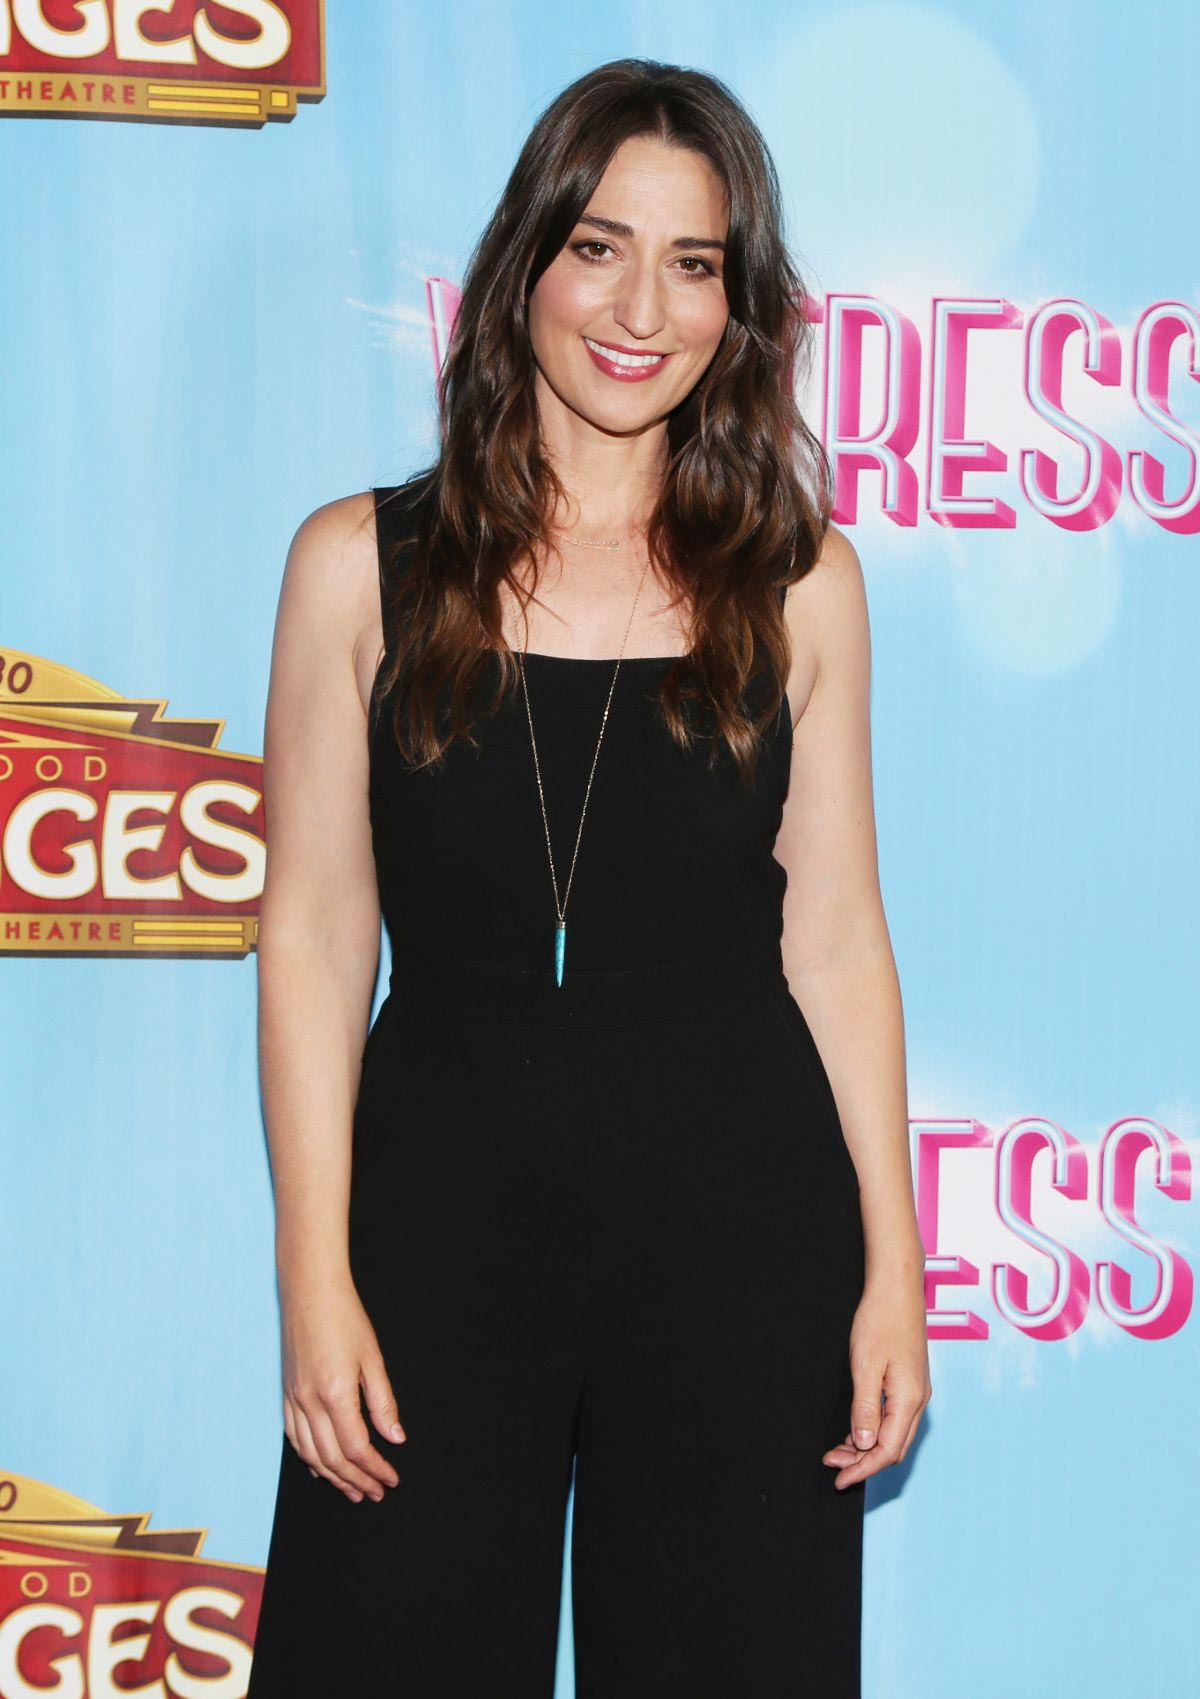 Cleavage Sara Bareilles nudes (49 foto and video), Sexy, Cleavage, Twitter, lingerie 2006